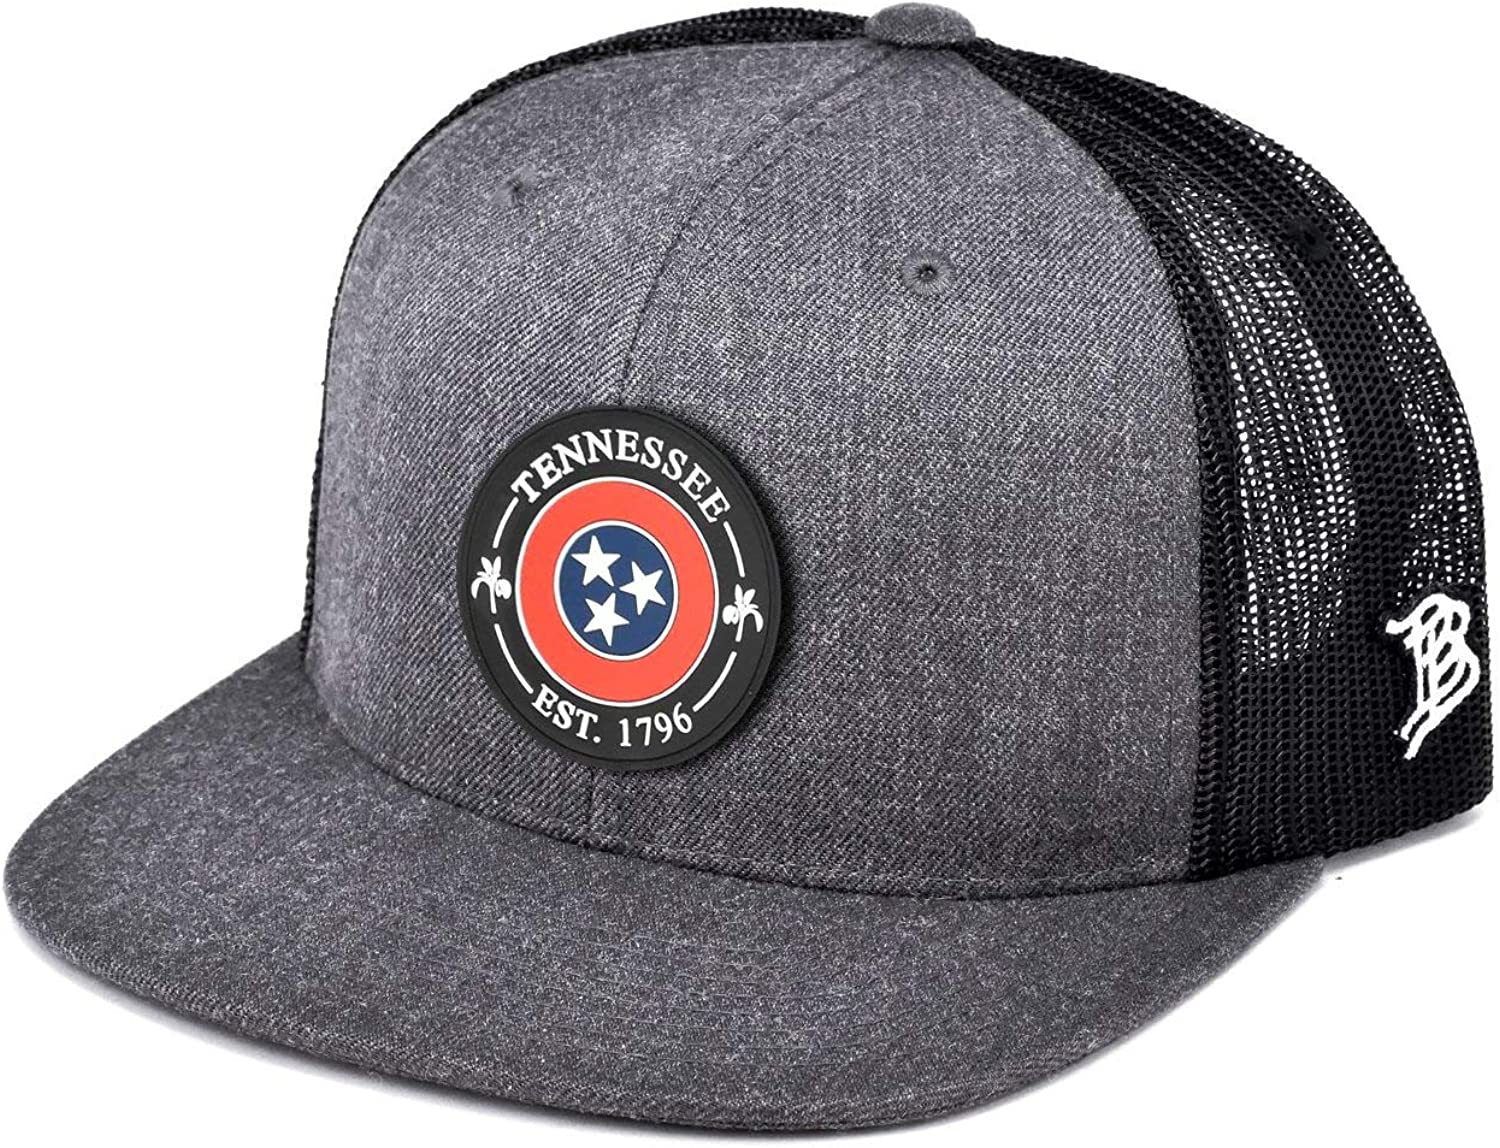 Max 50% OFF Branded Bills specialty shop Compass Series Tennessee Hats